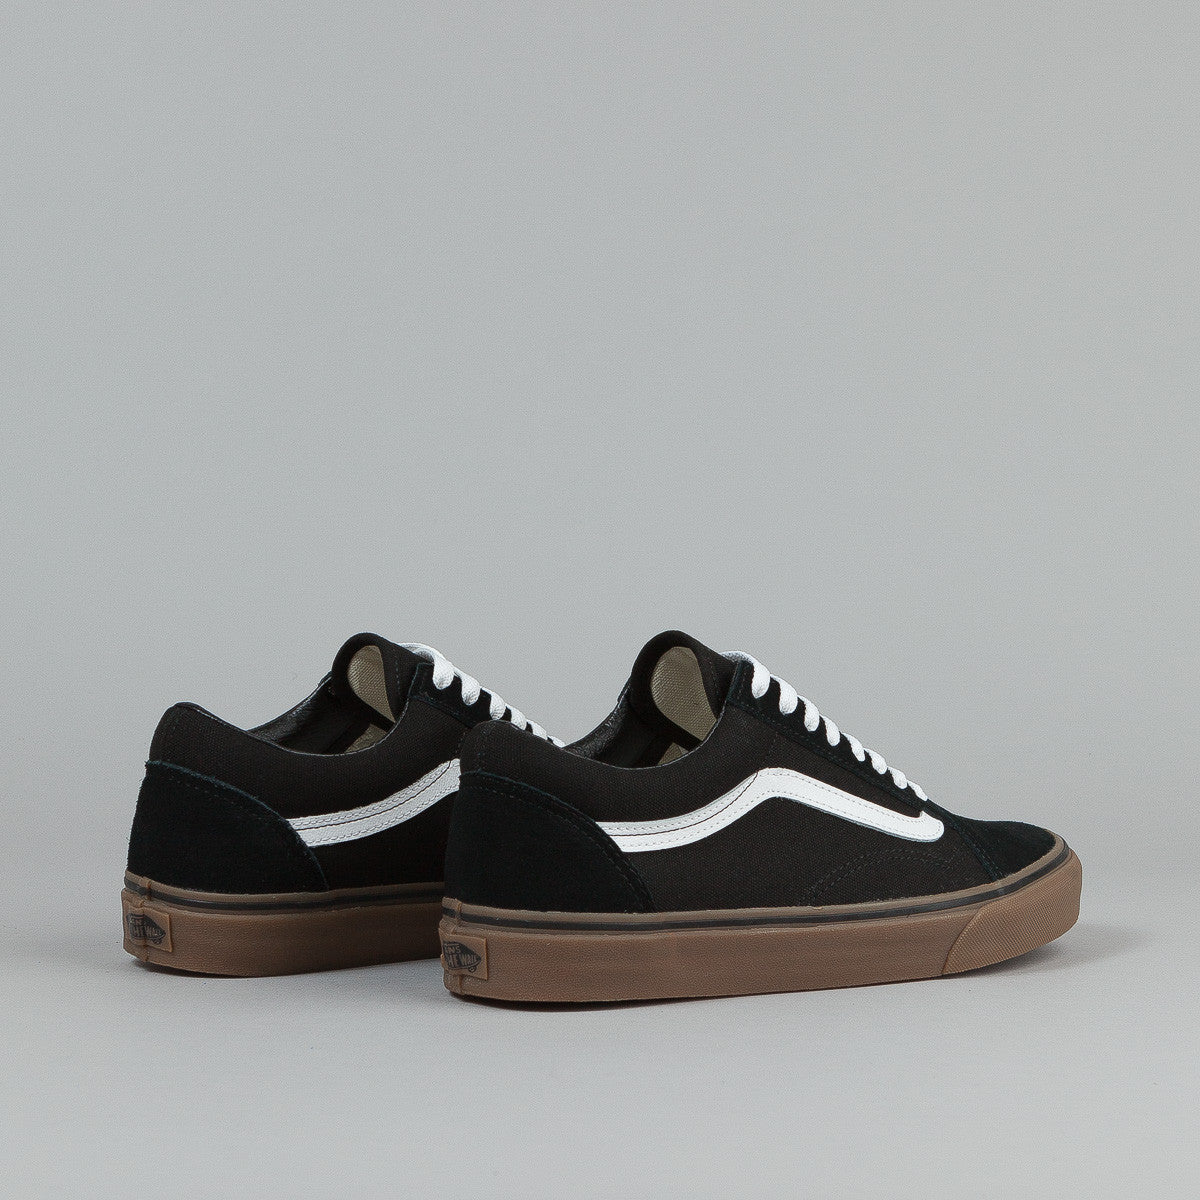 vans old skool black and white gum